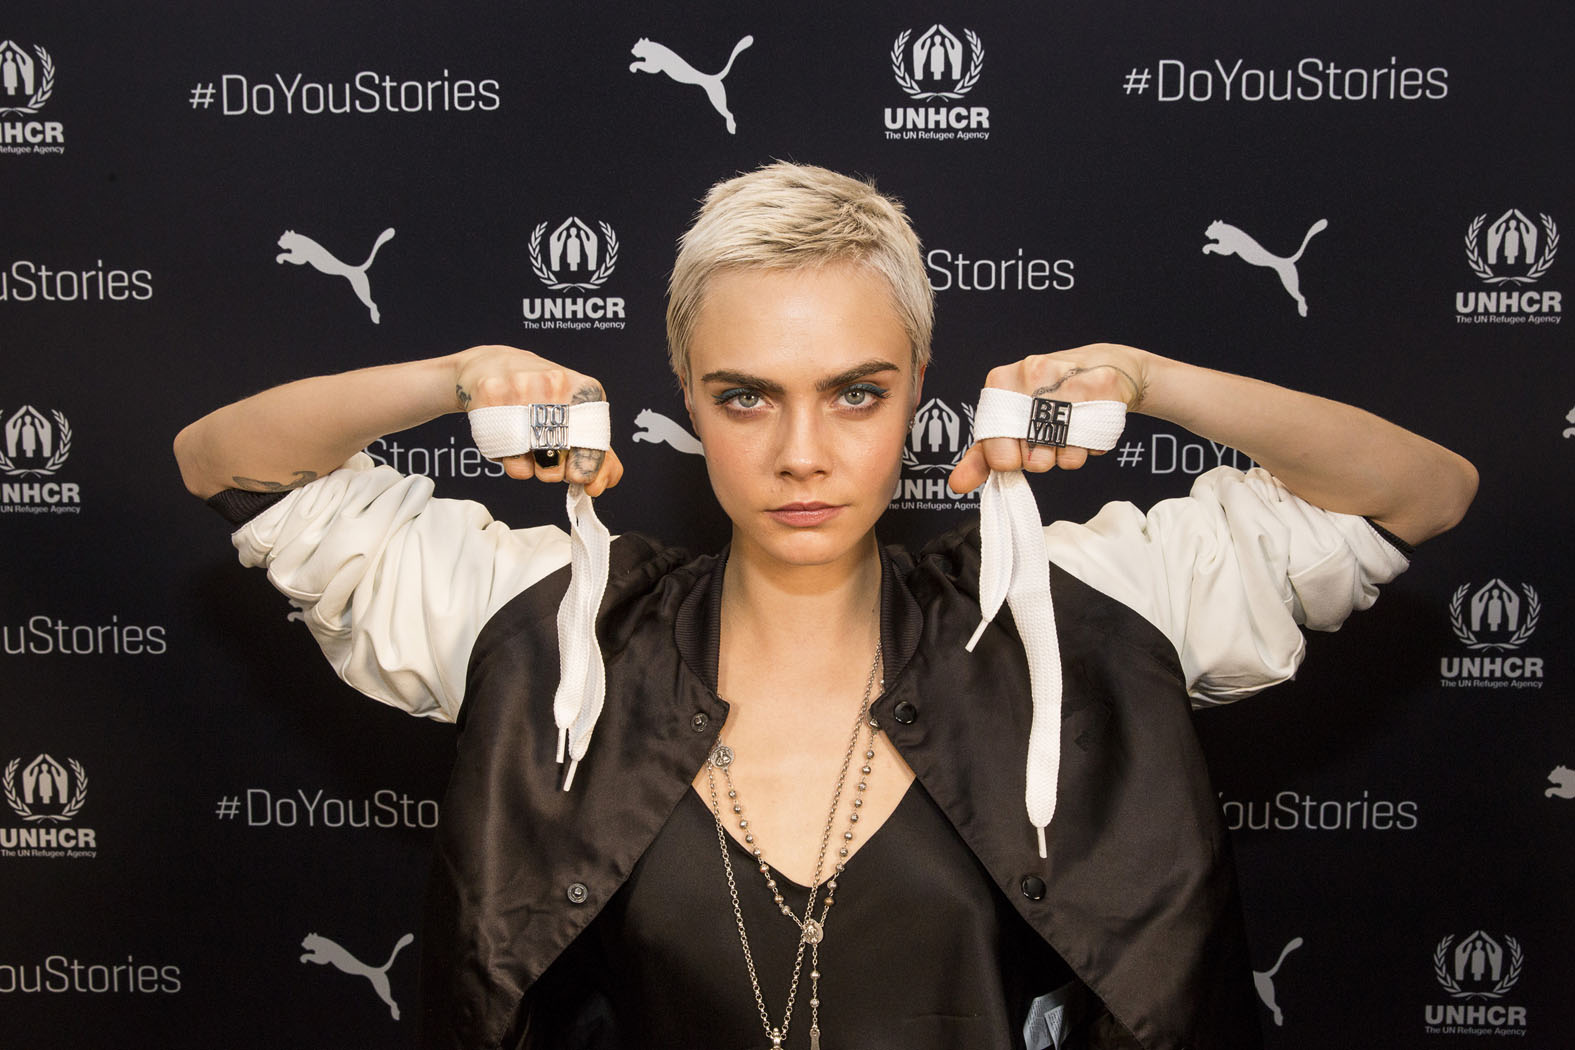 Big Sweater, Don't Care! DoYouStories CaraDelevingne Laces lo